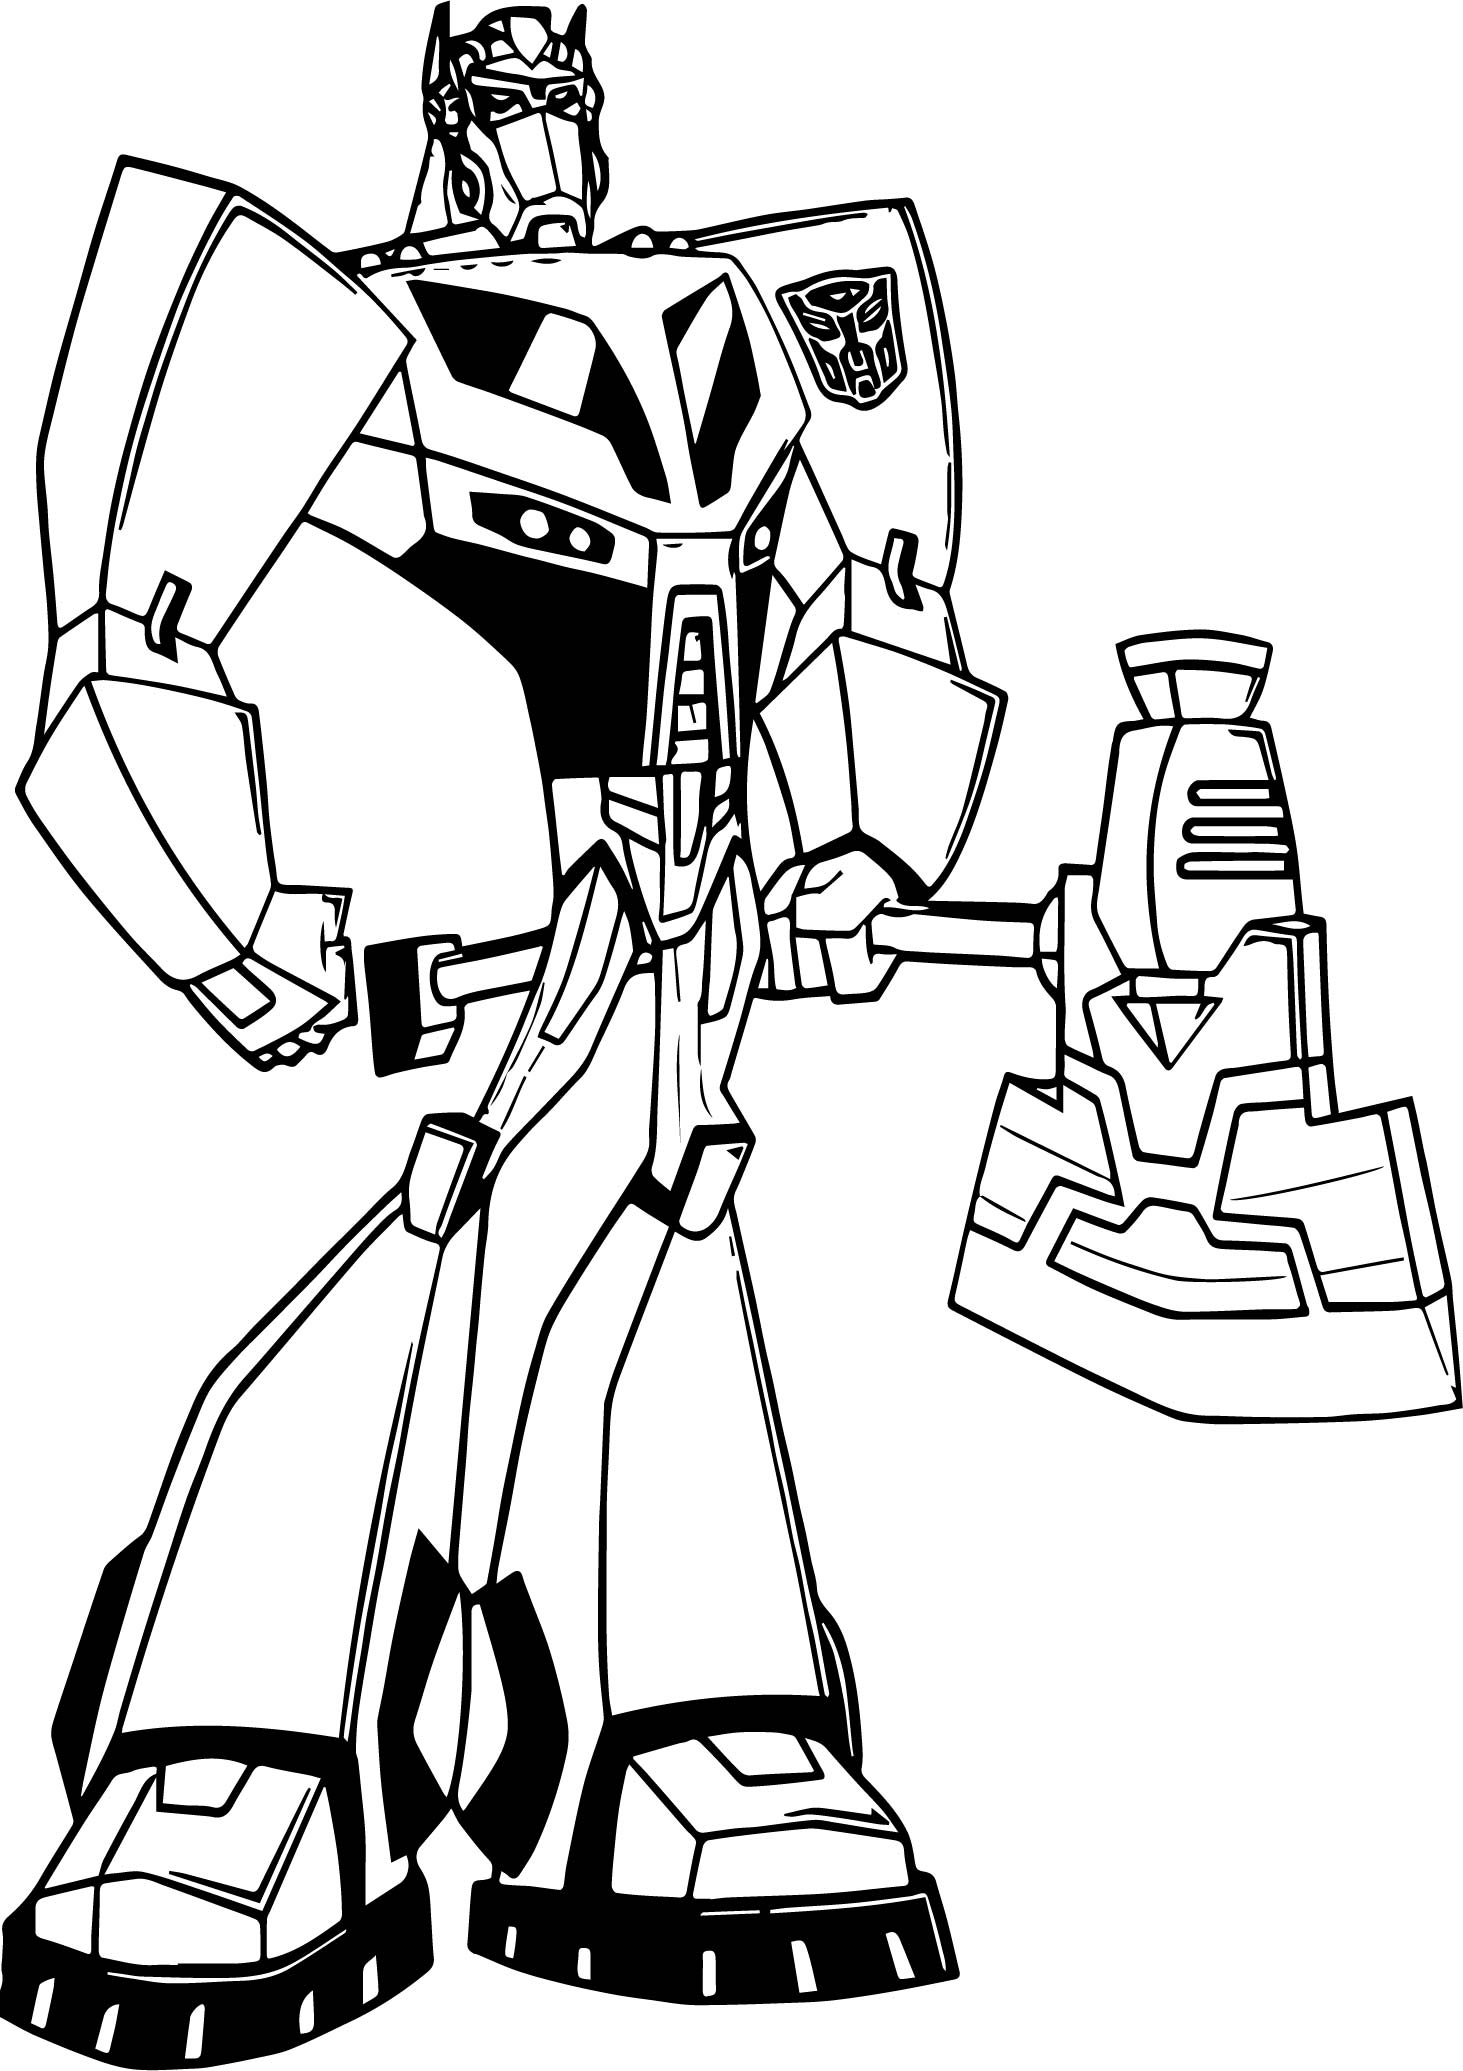 coloring transformers transformers coloring pages coloring pages to download transformers coloring